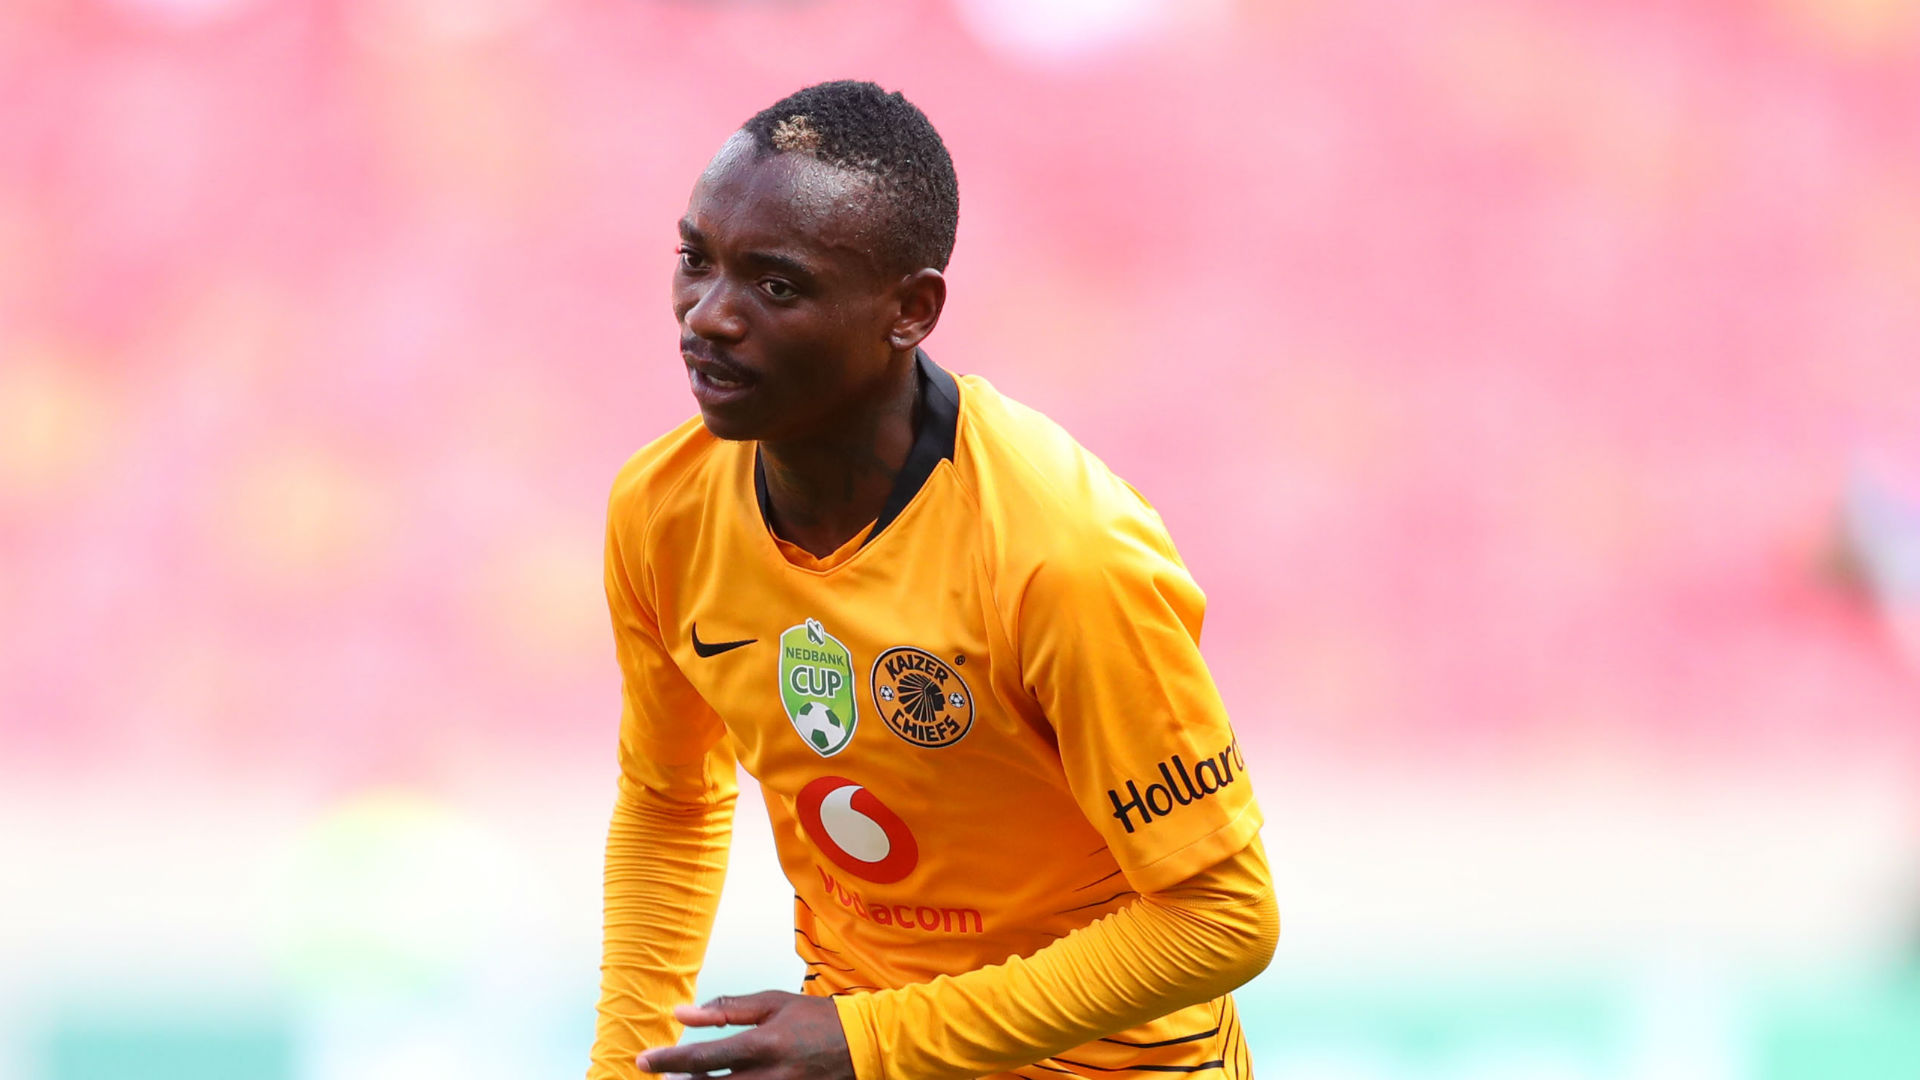 Khama Billiat the great is back in action